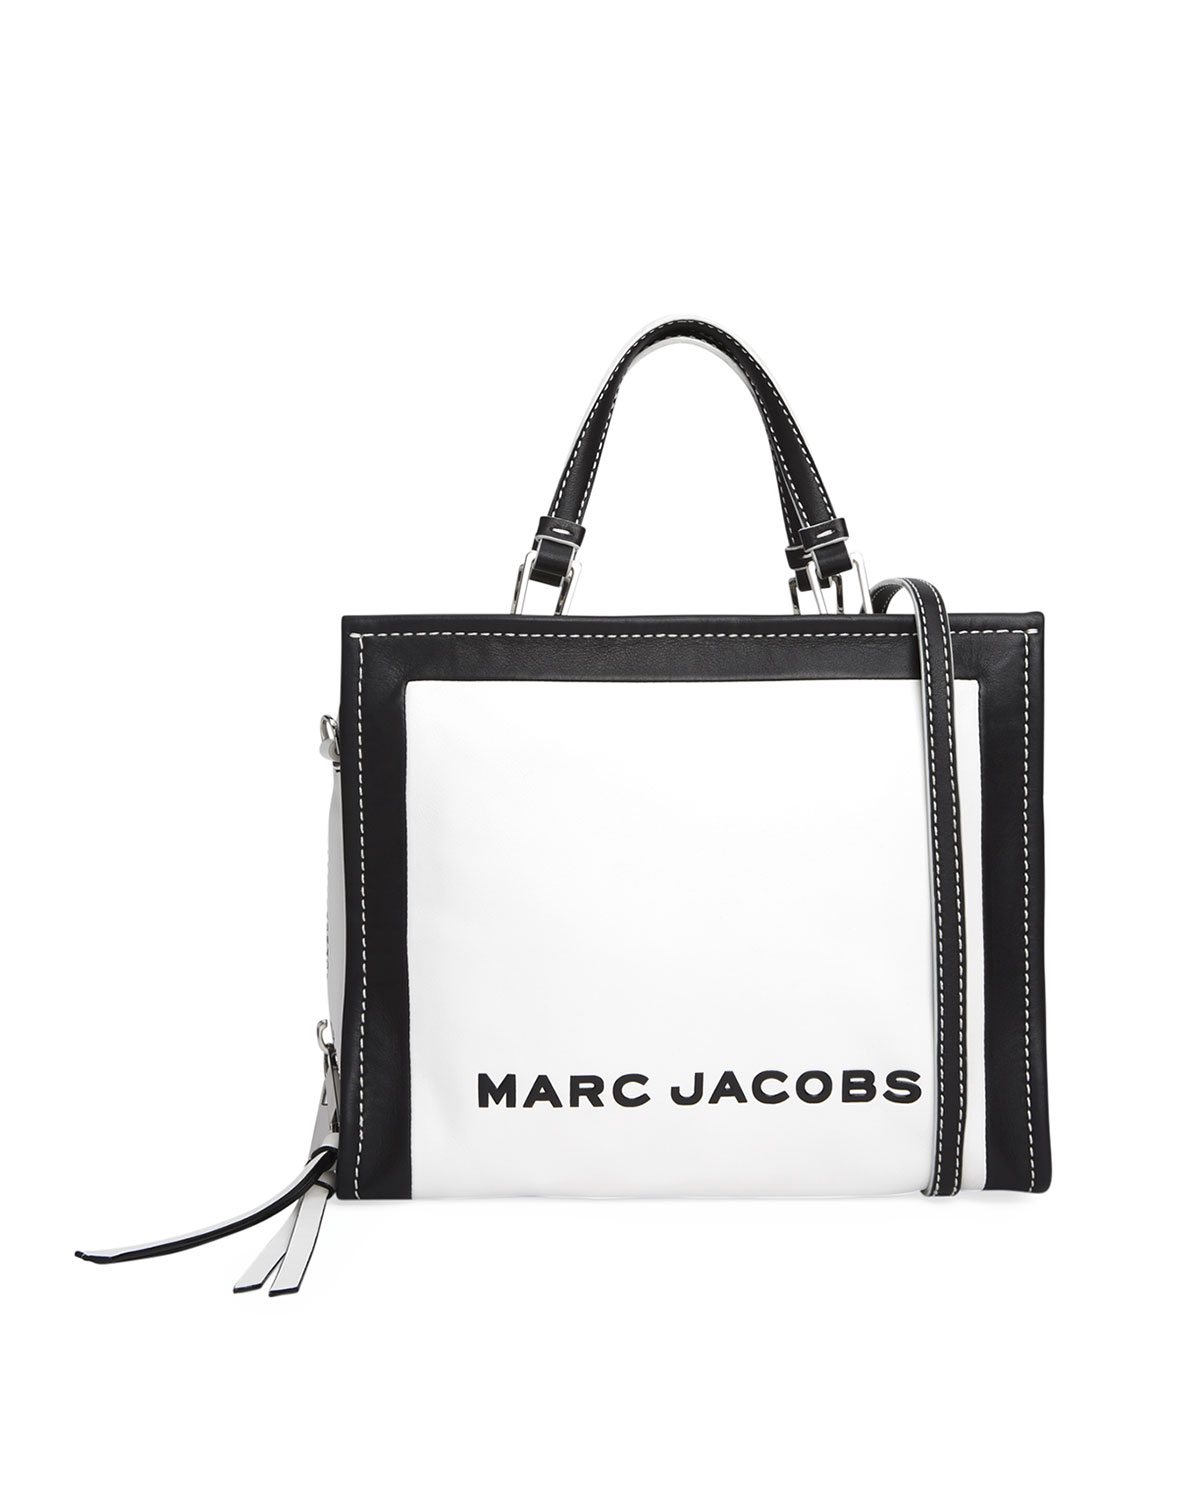 2523df65e Marc Jacobs The Box Shopper 29 Tote Bag | Neiman Marcus